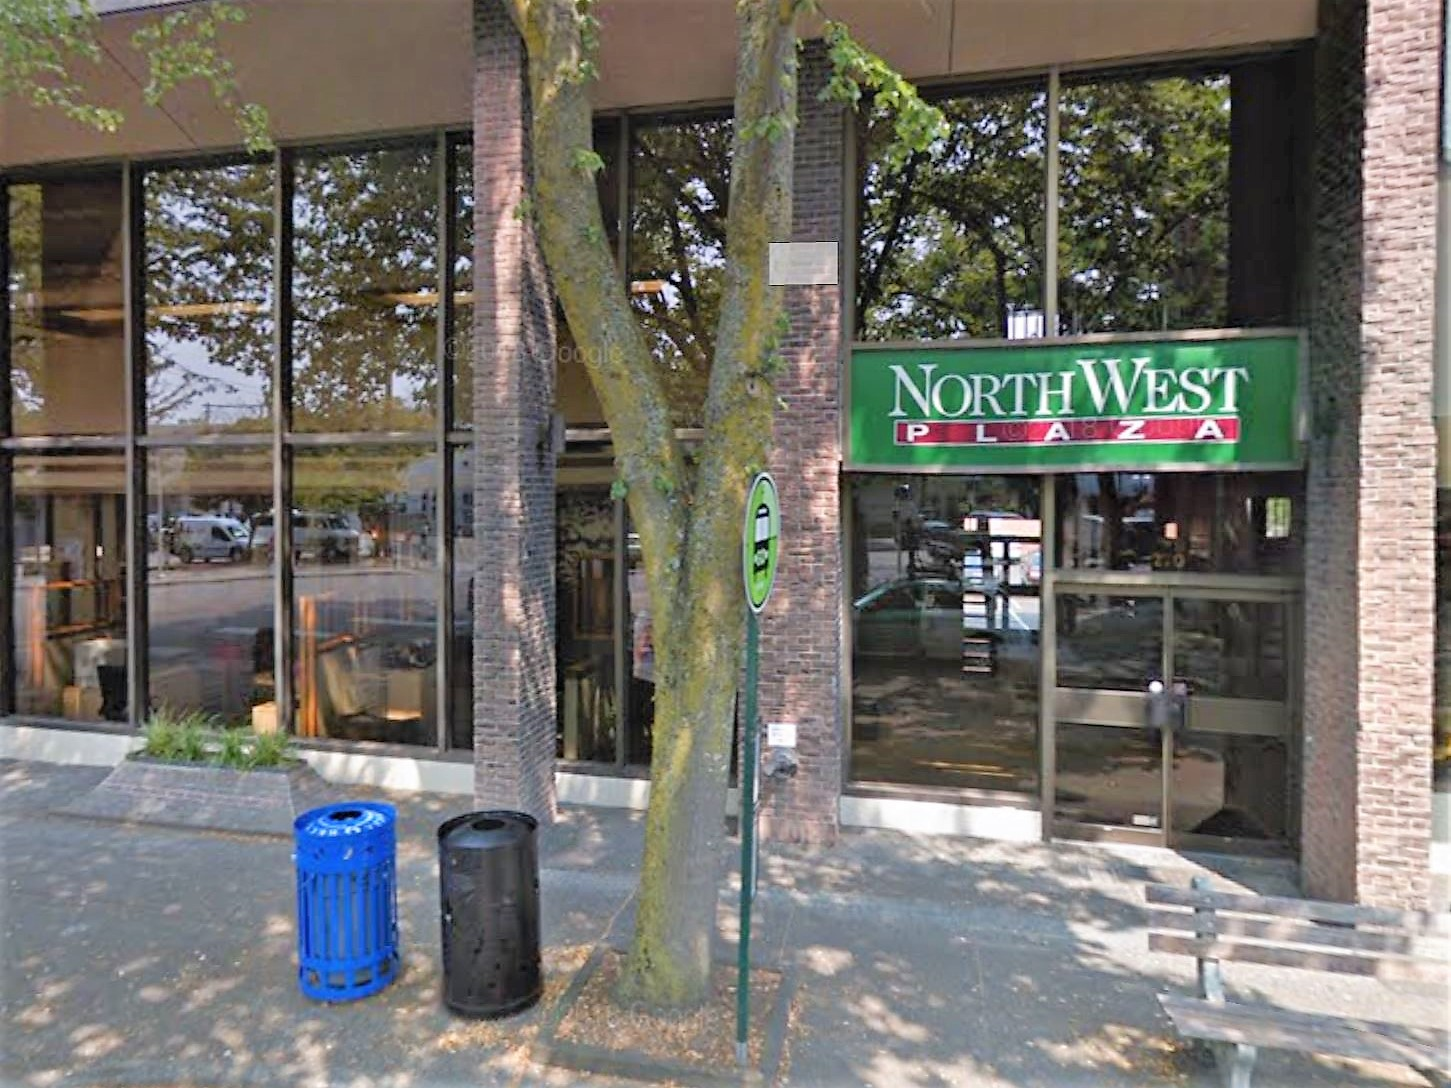 Freeland & Associates, Inc. is located on the second floor of the Northwest Plaza building.